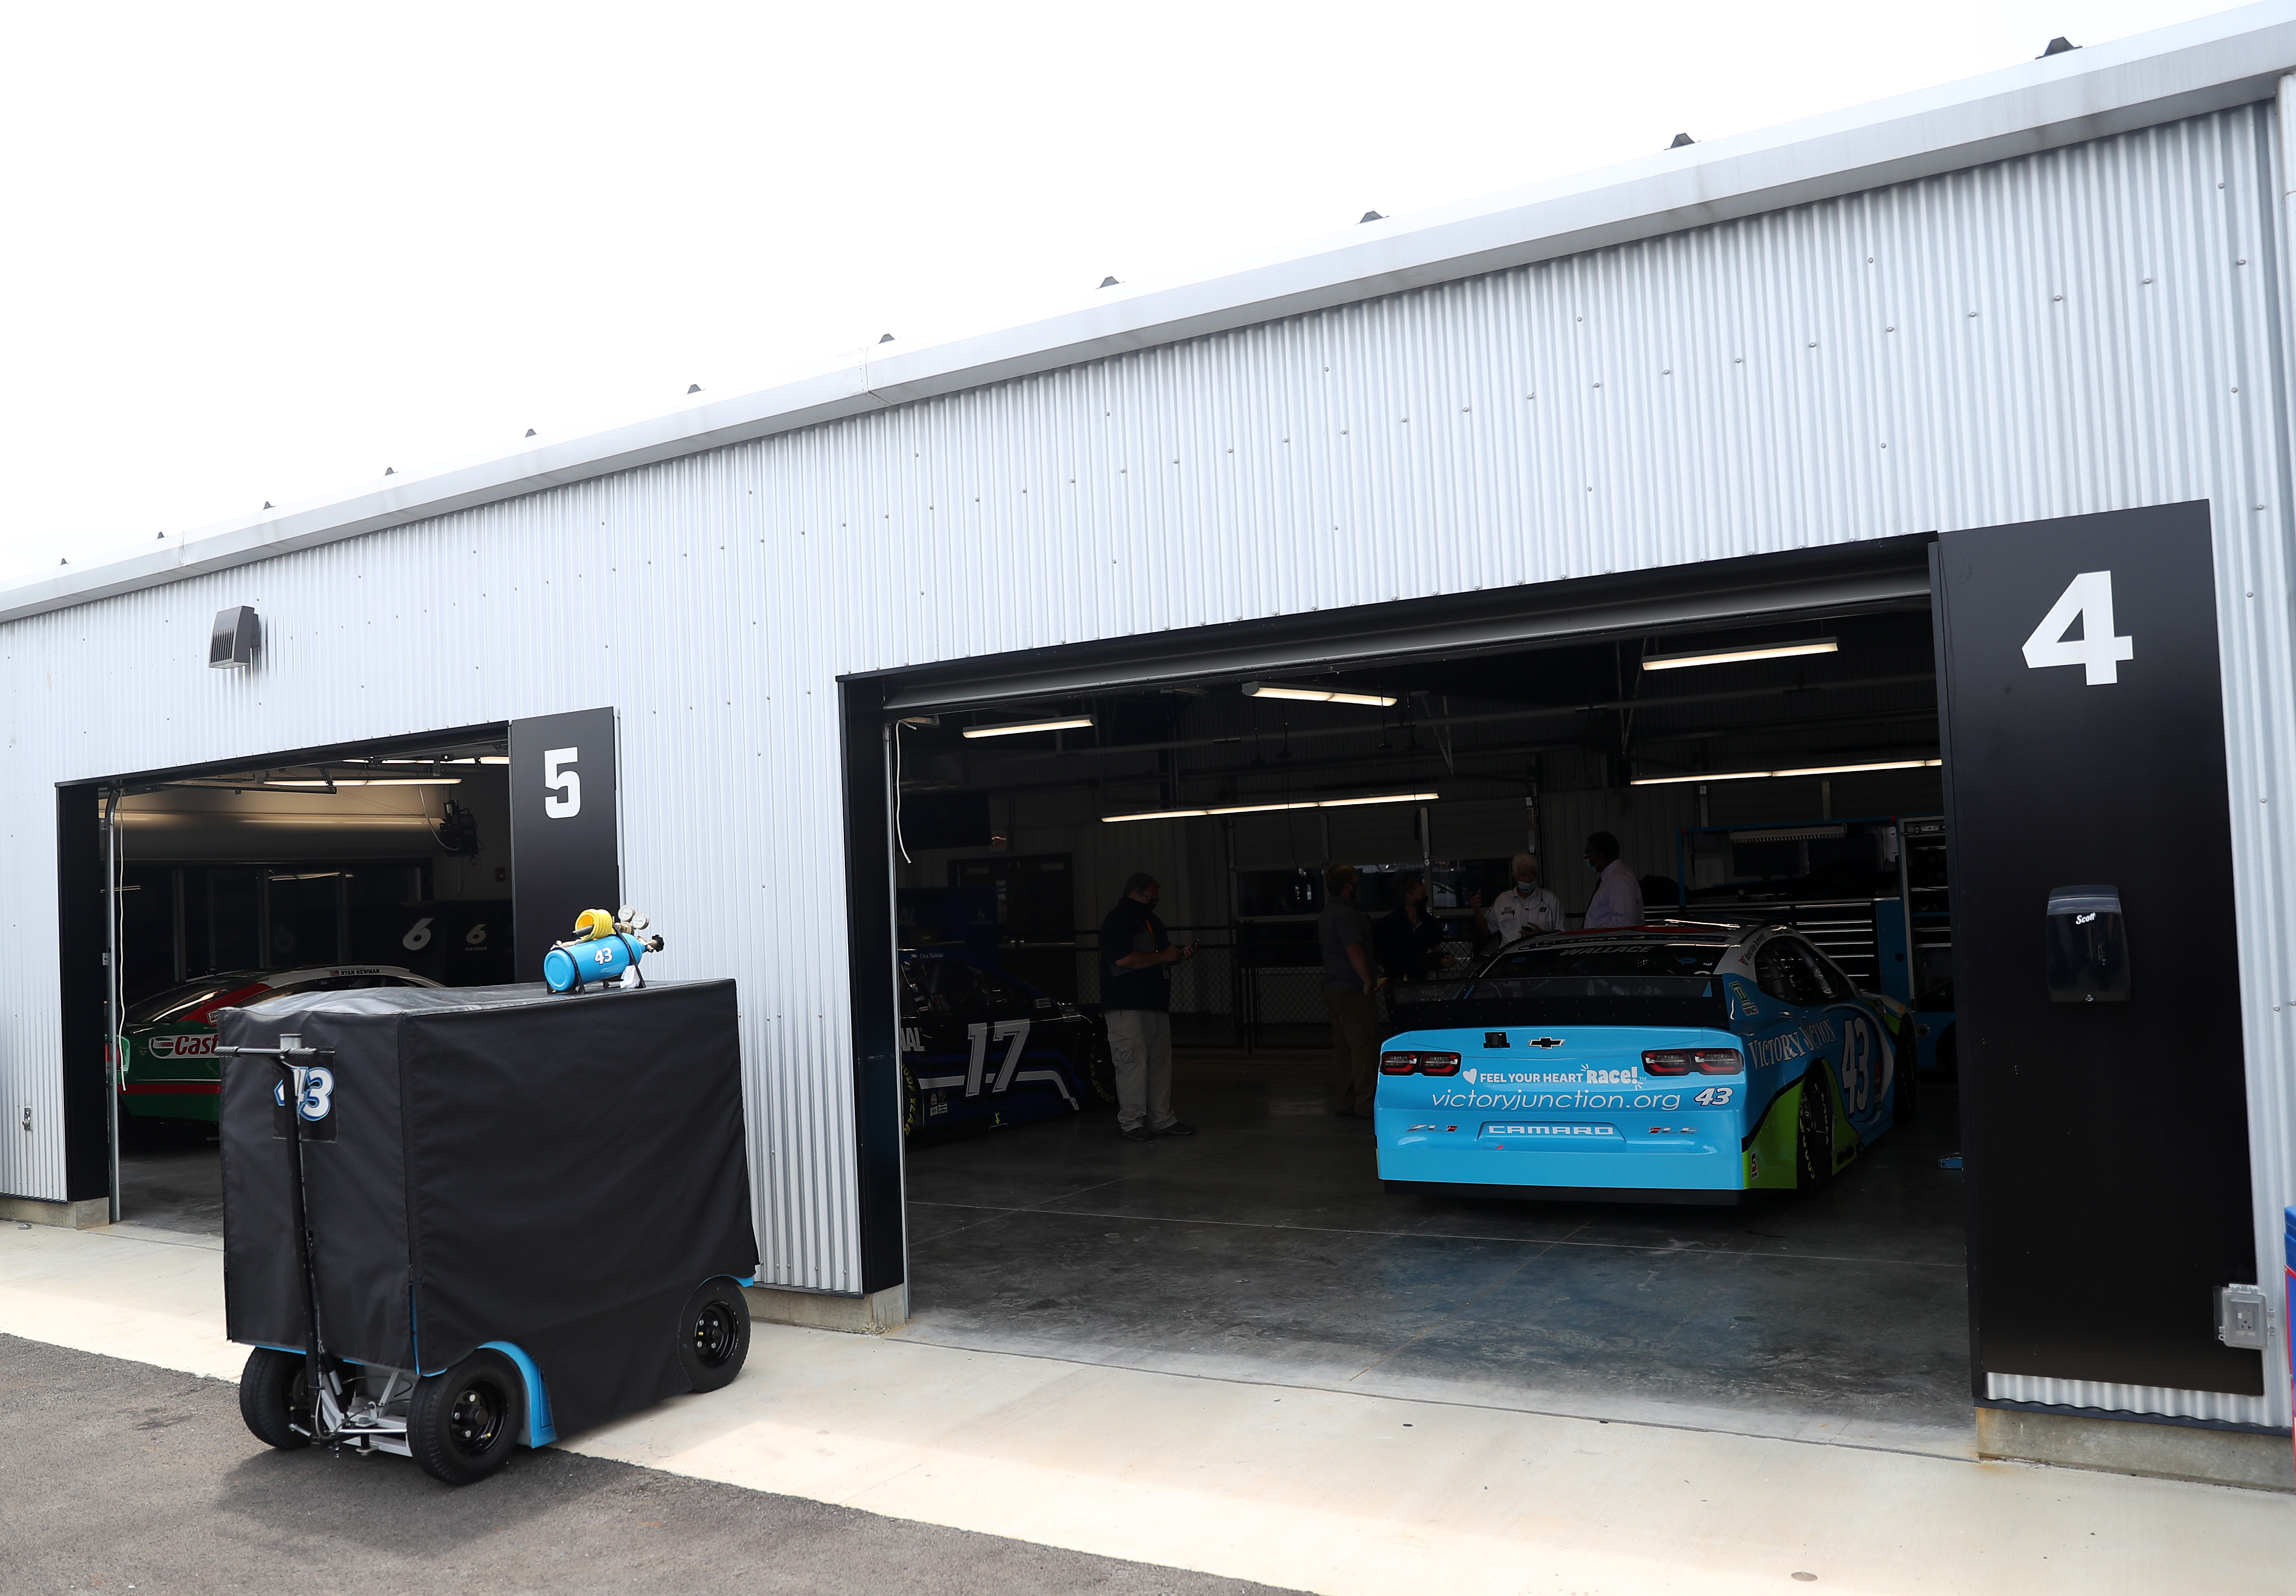 Bubba Wallace Richard Petty Motorsports NASCAR garage Talladega 2020